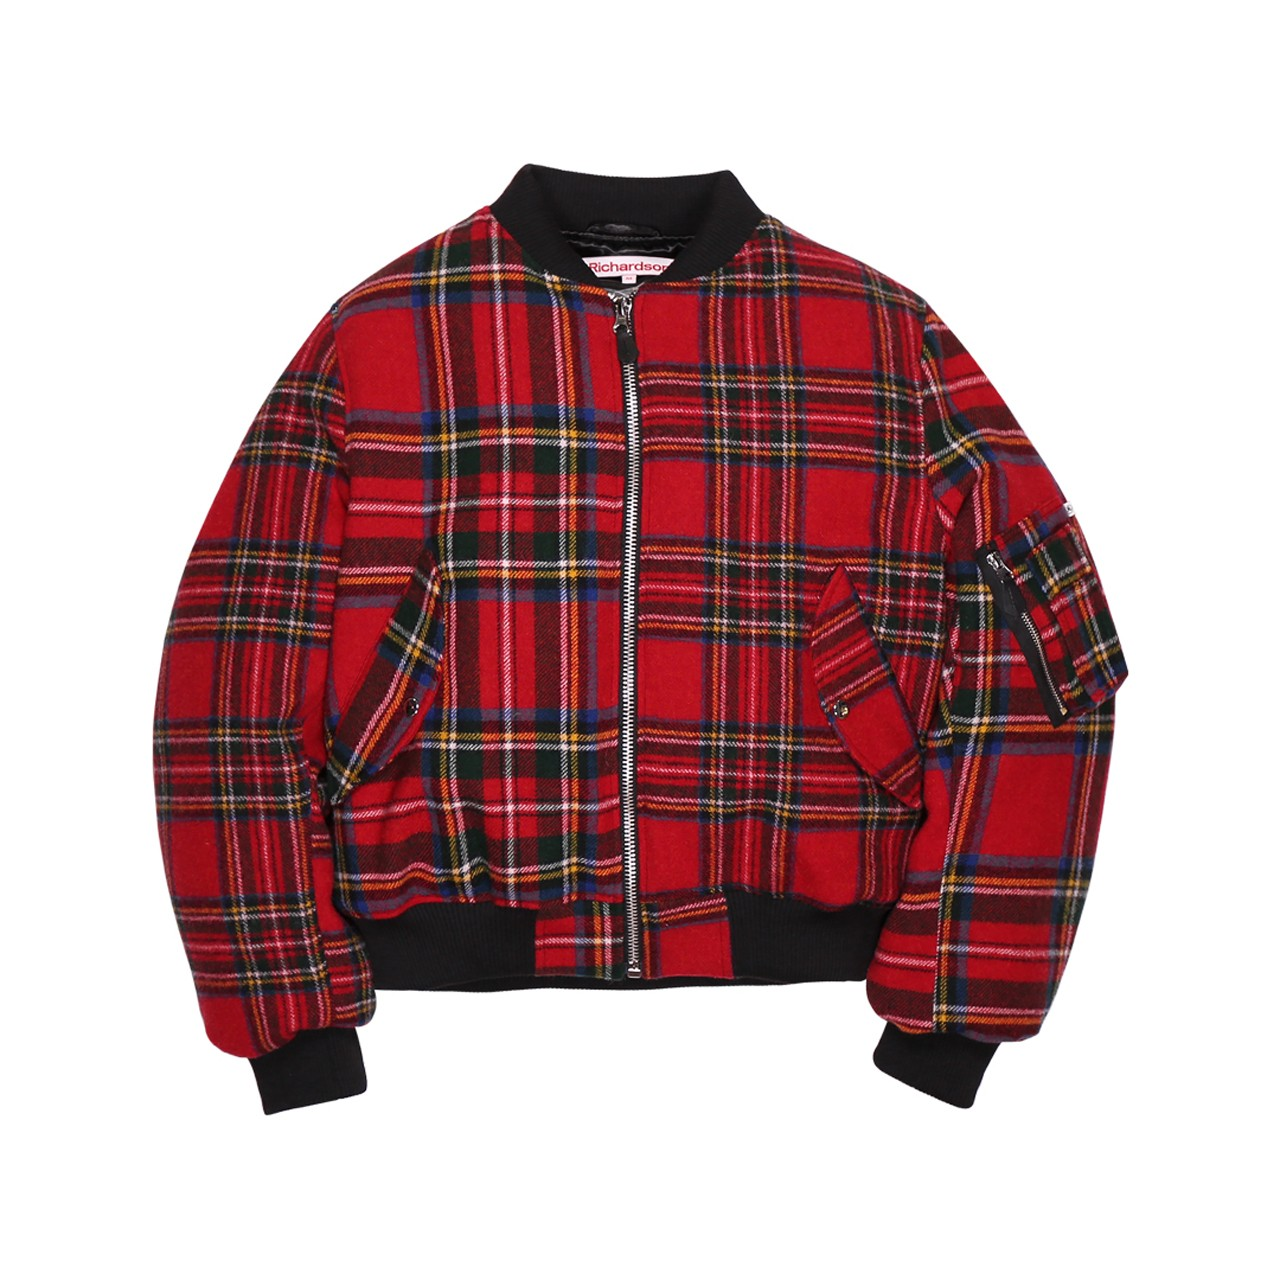 Richardson x UNUSED による初のコラボアイテムが登場 Richardson x UNUSED Winter 2020 Tartan Collaboration collection fall fw20 release date info buy website store shop japan designer